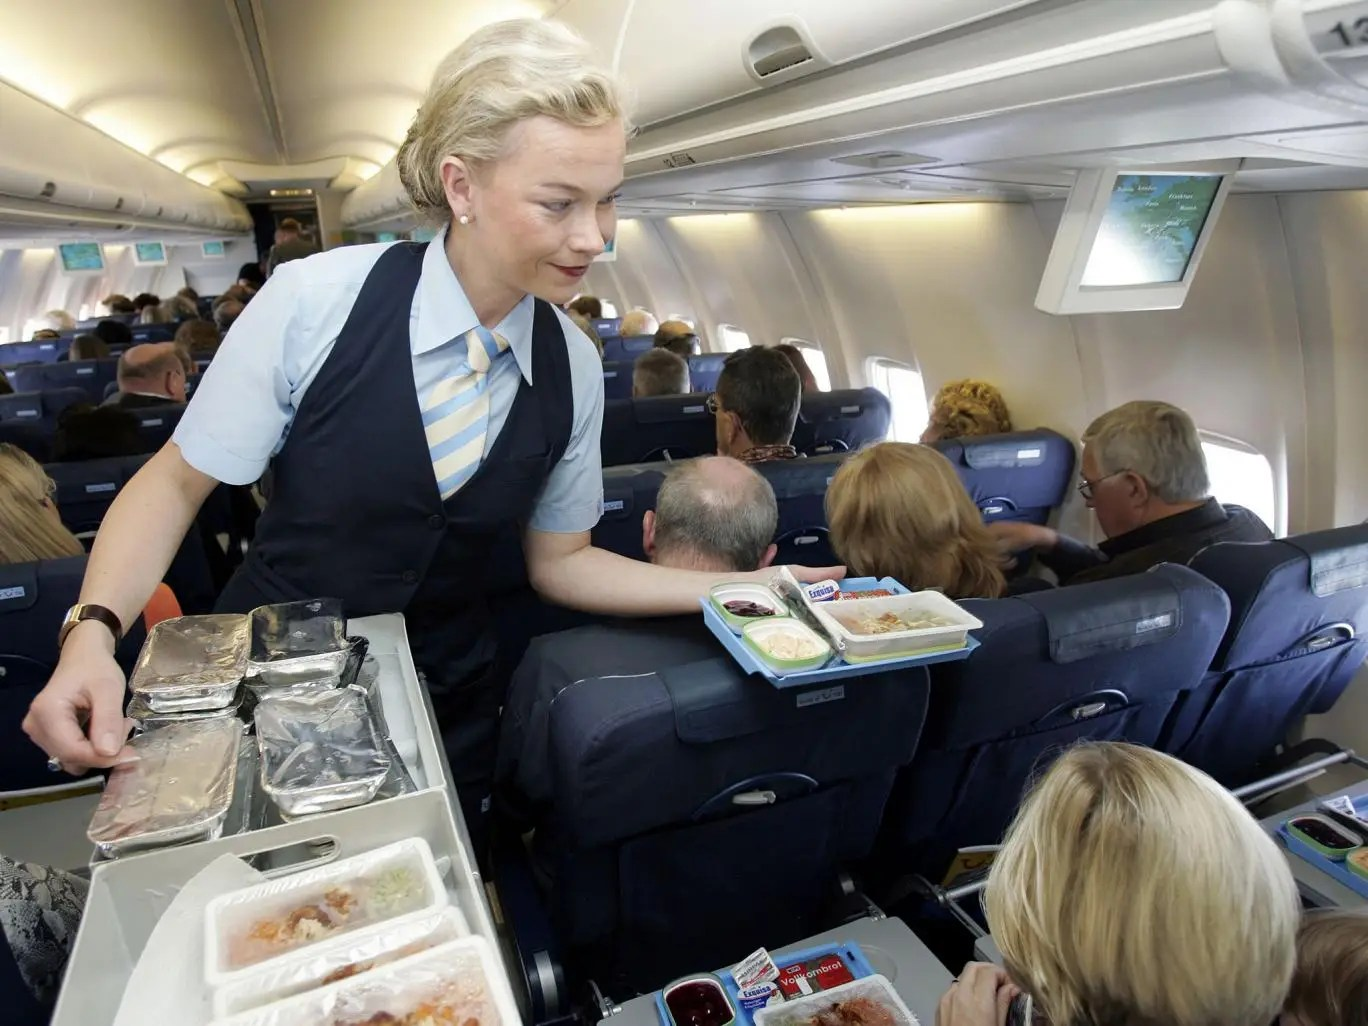 Flight attendant serving in the cabin of an aeroplane